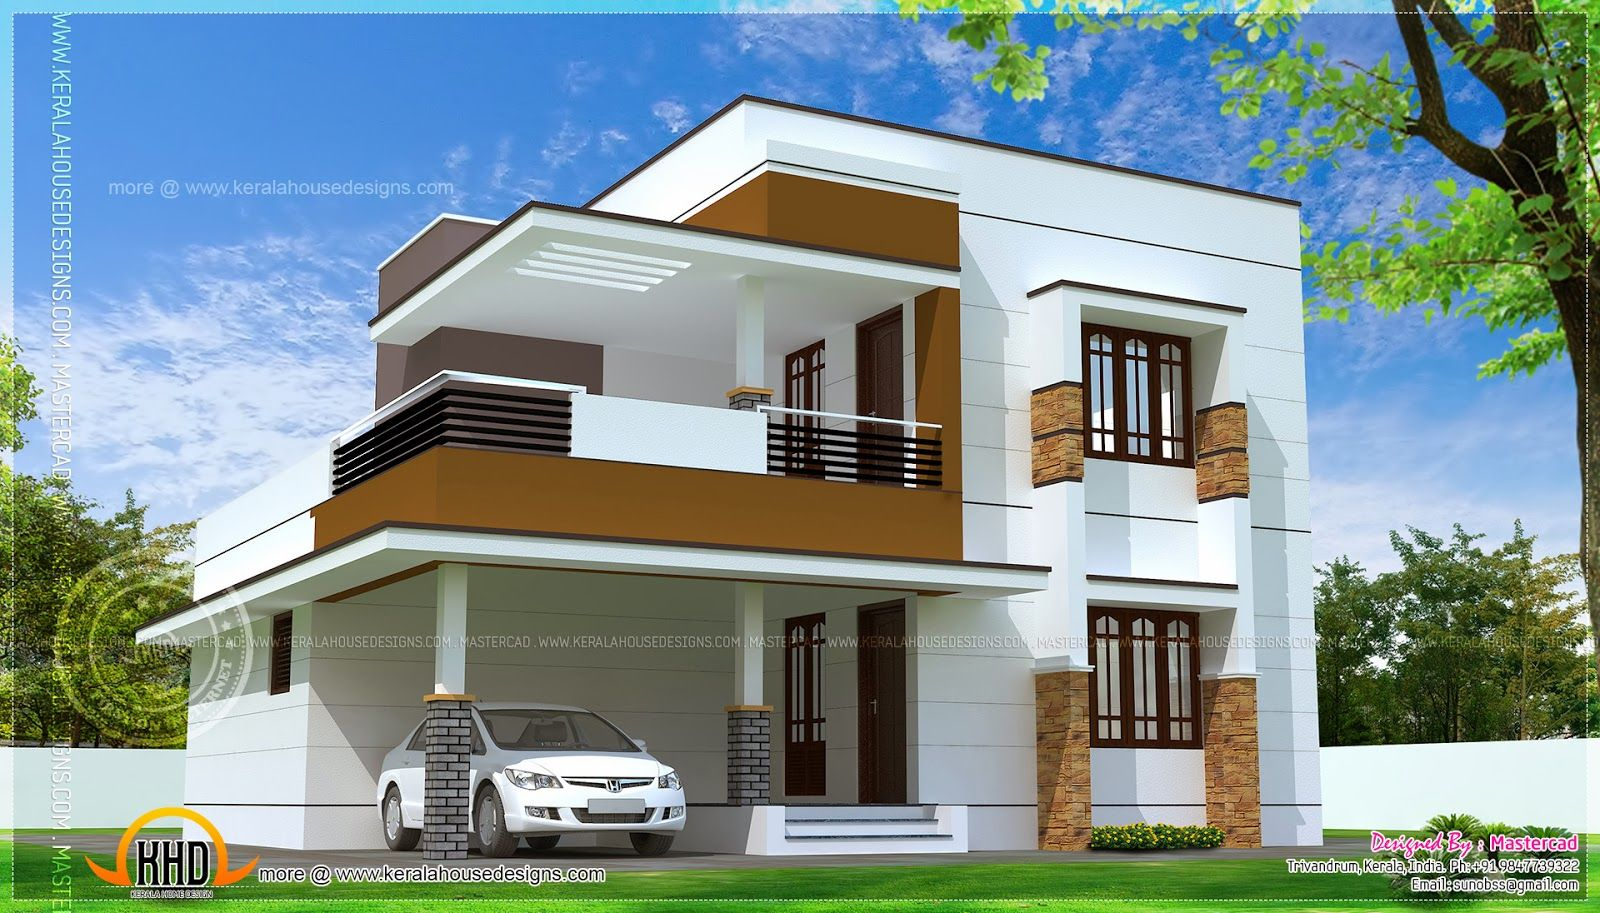 modern house plans erven 500sq m simple modern home design in 1817 square feet - Simple House Design With Second Floor